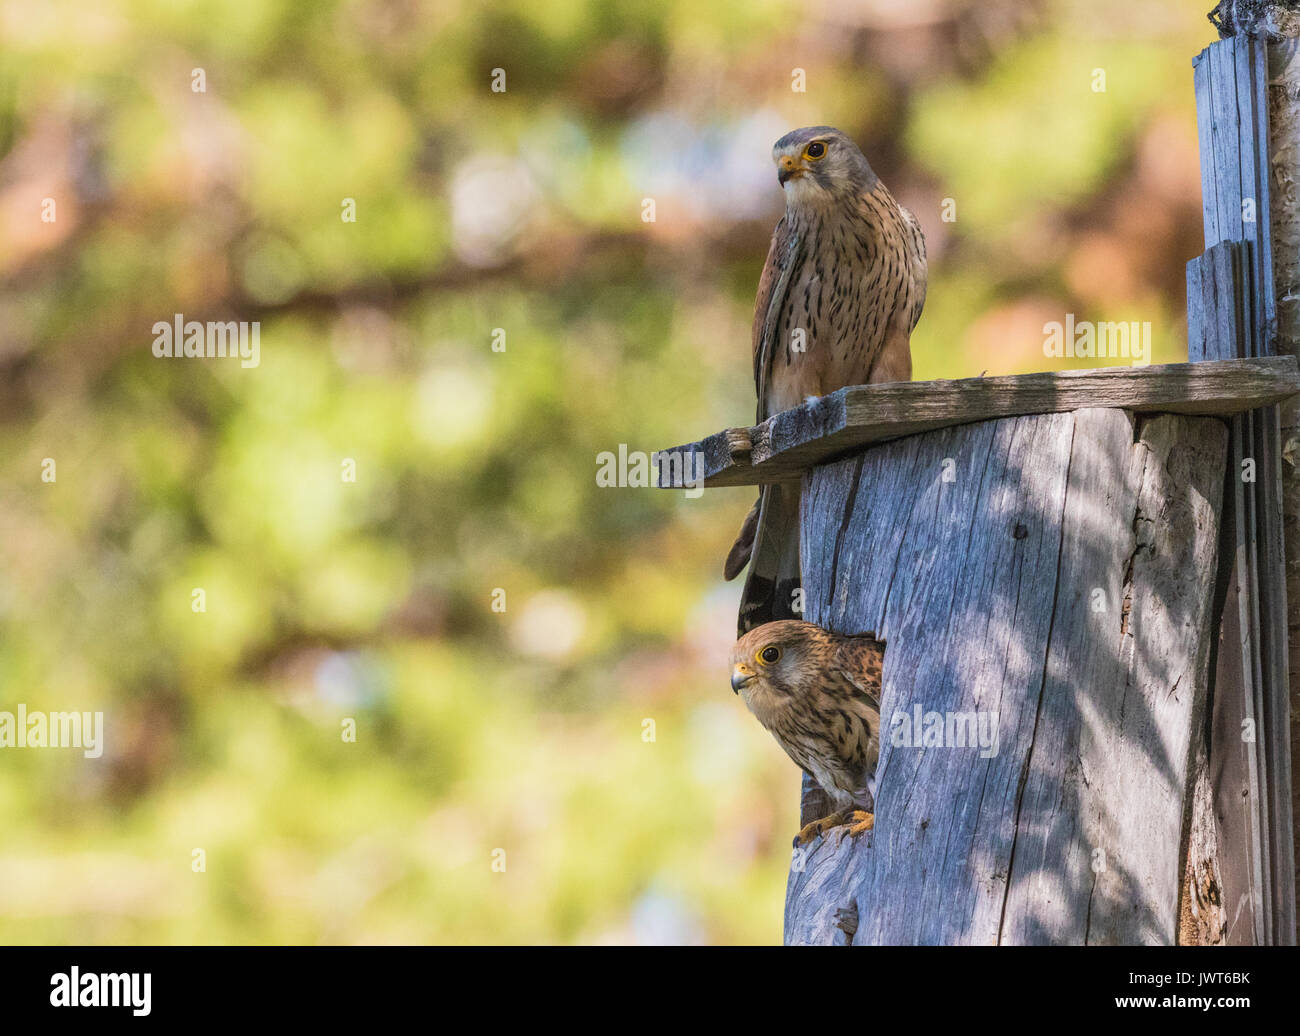 Male and female Common kestrel, Falco tinnunculus, sitting on a bird-house and the female is looking out from it, Norrbotten, Sweden - Stock Image